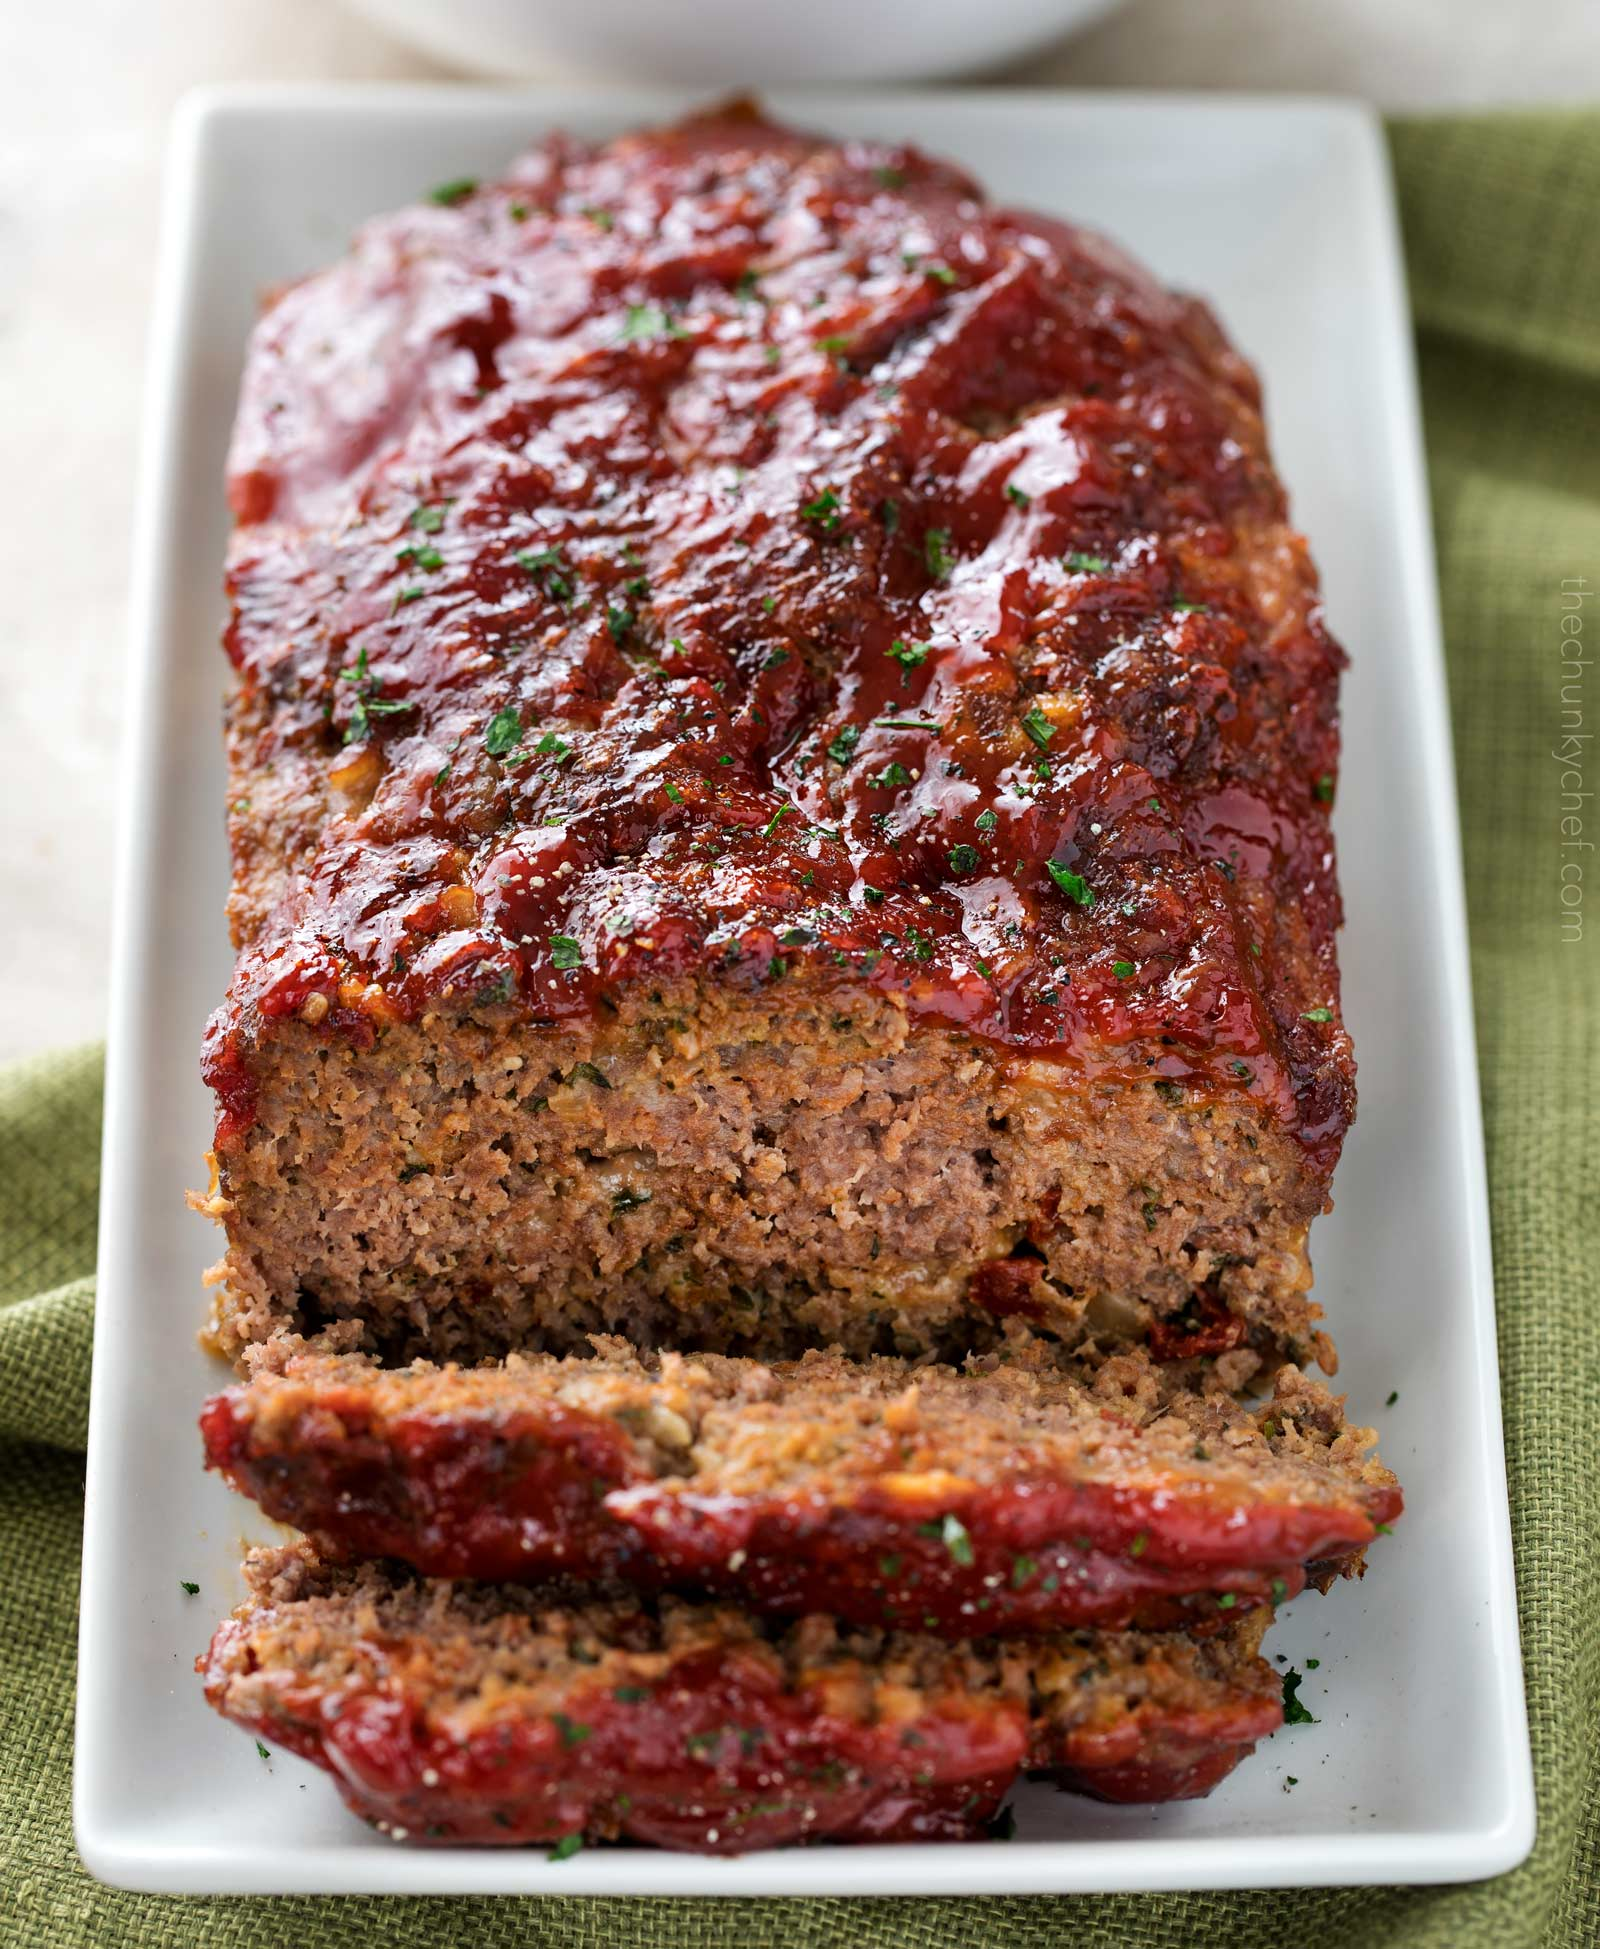 Glazed Chipotle Meatloaf Recipe - The Chunky Chef